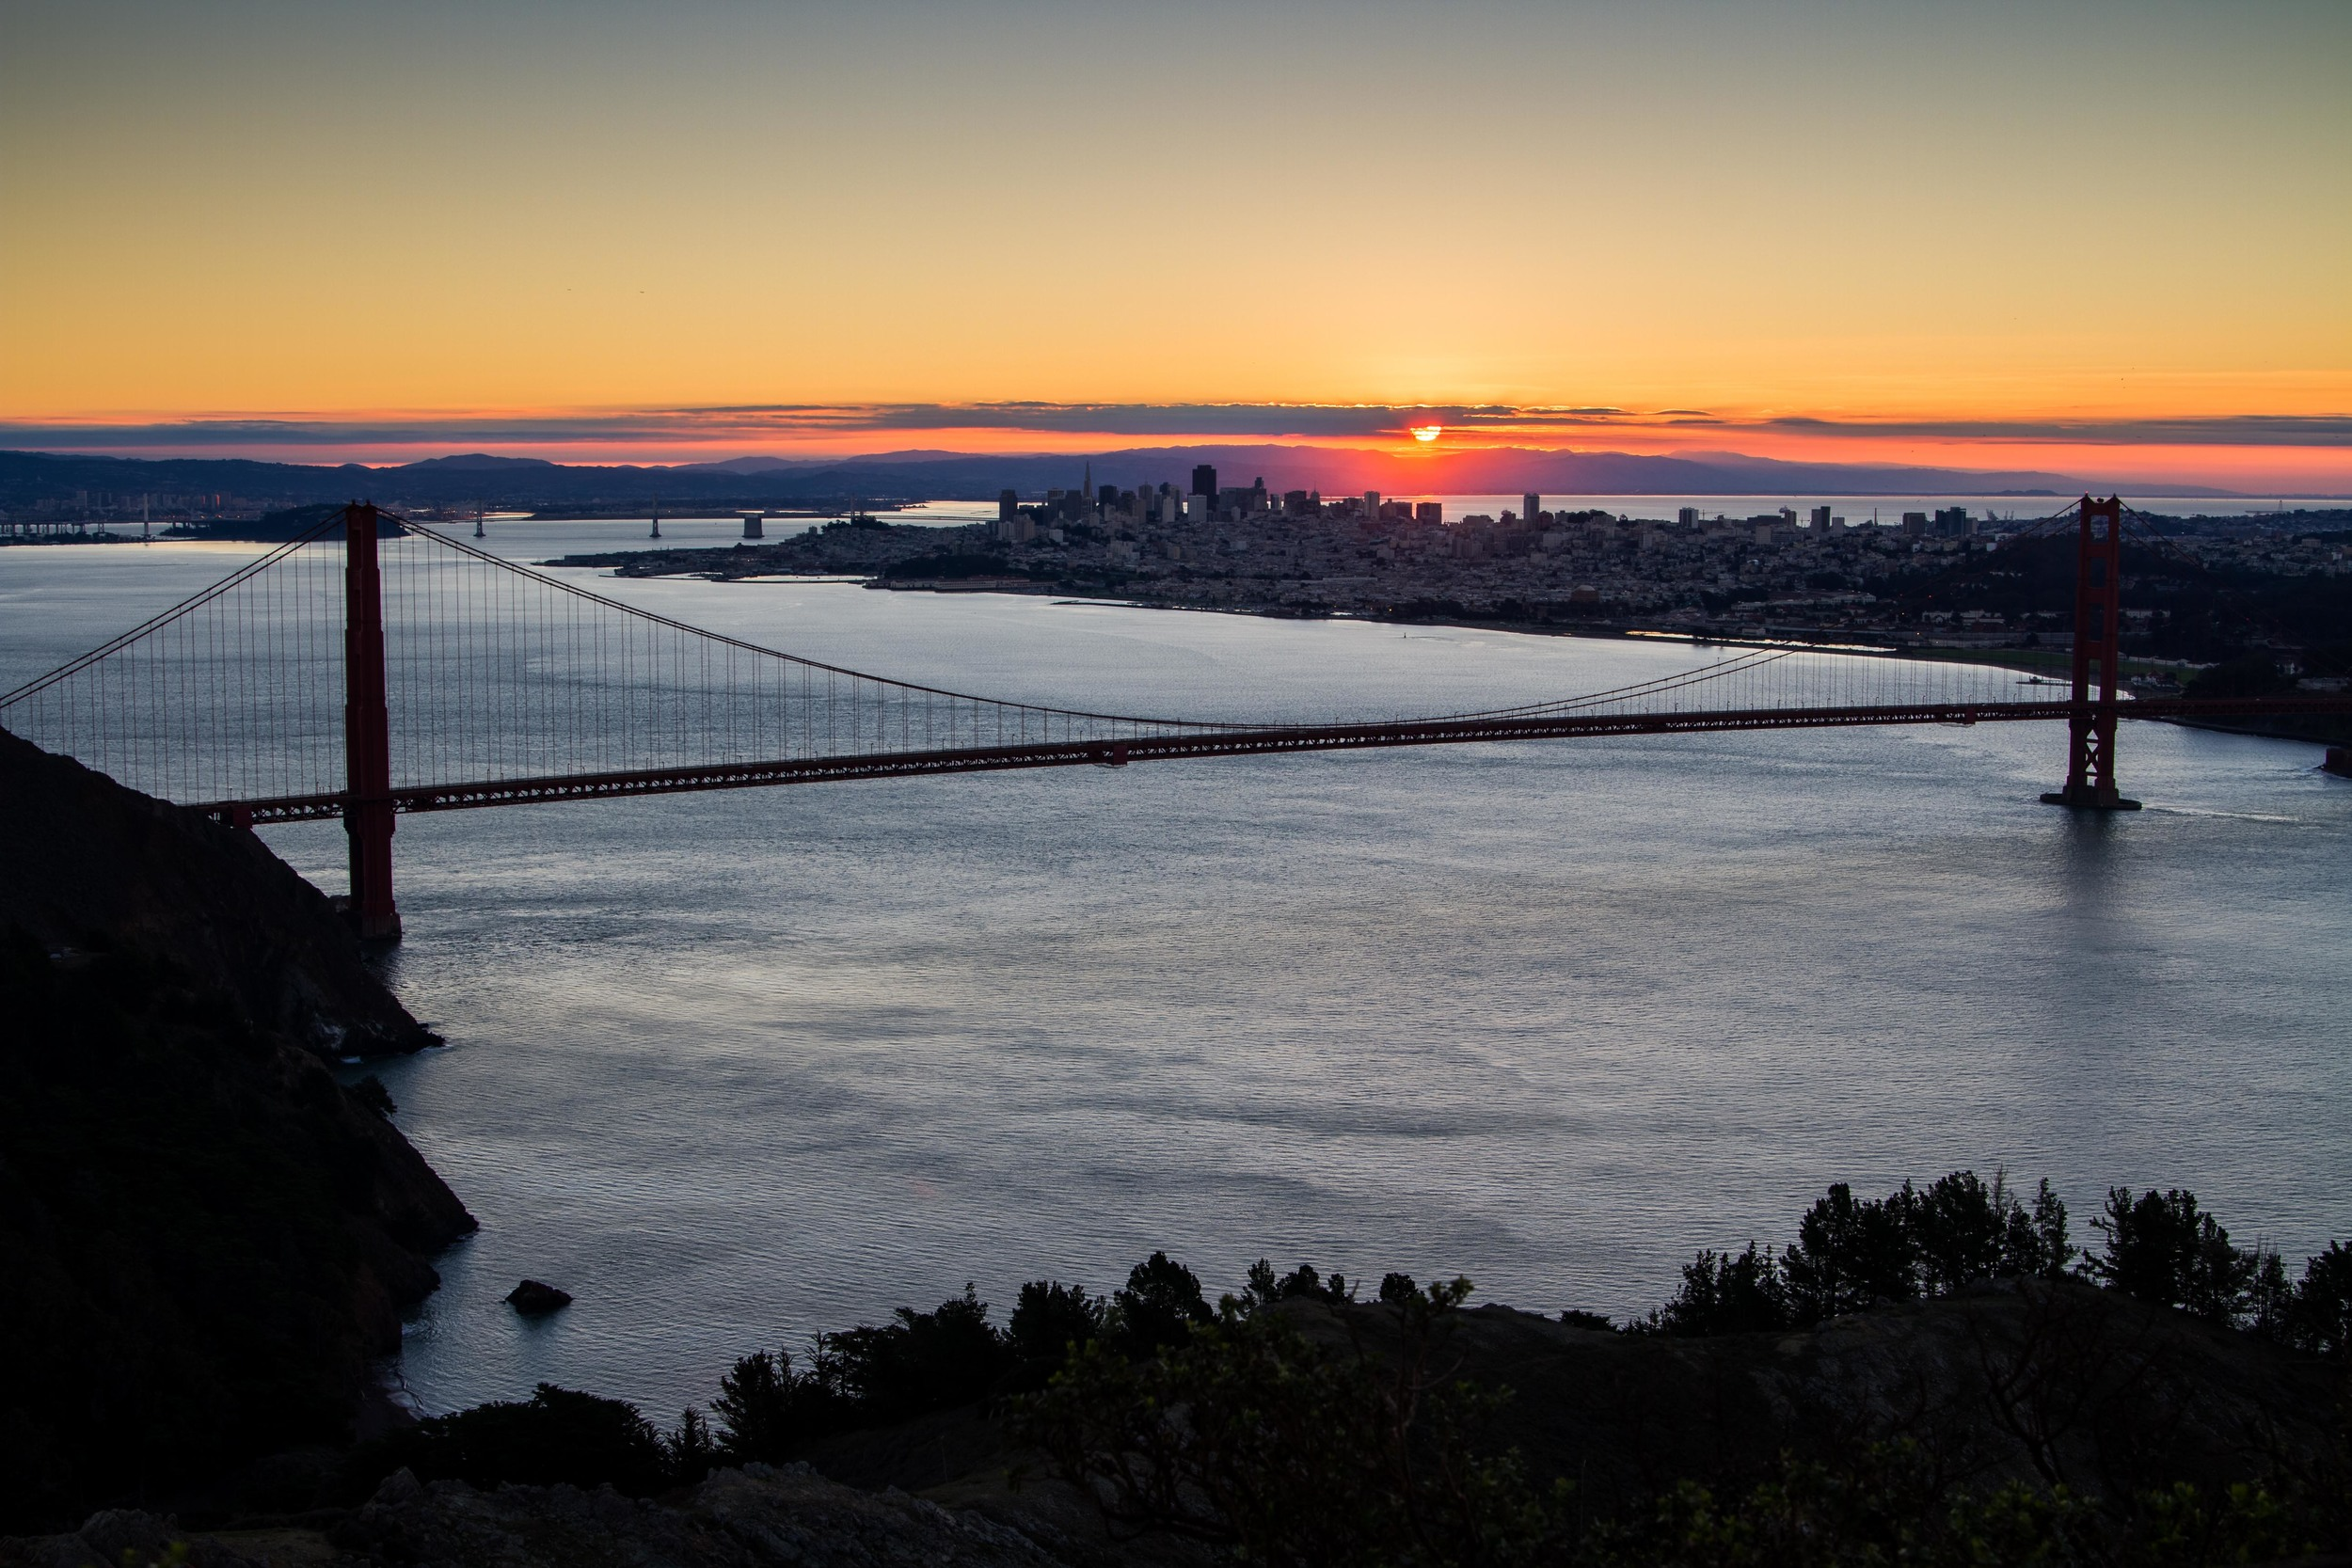 The first sunrise of 2016 over San Francisco.